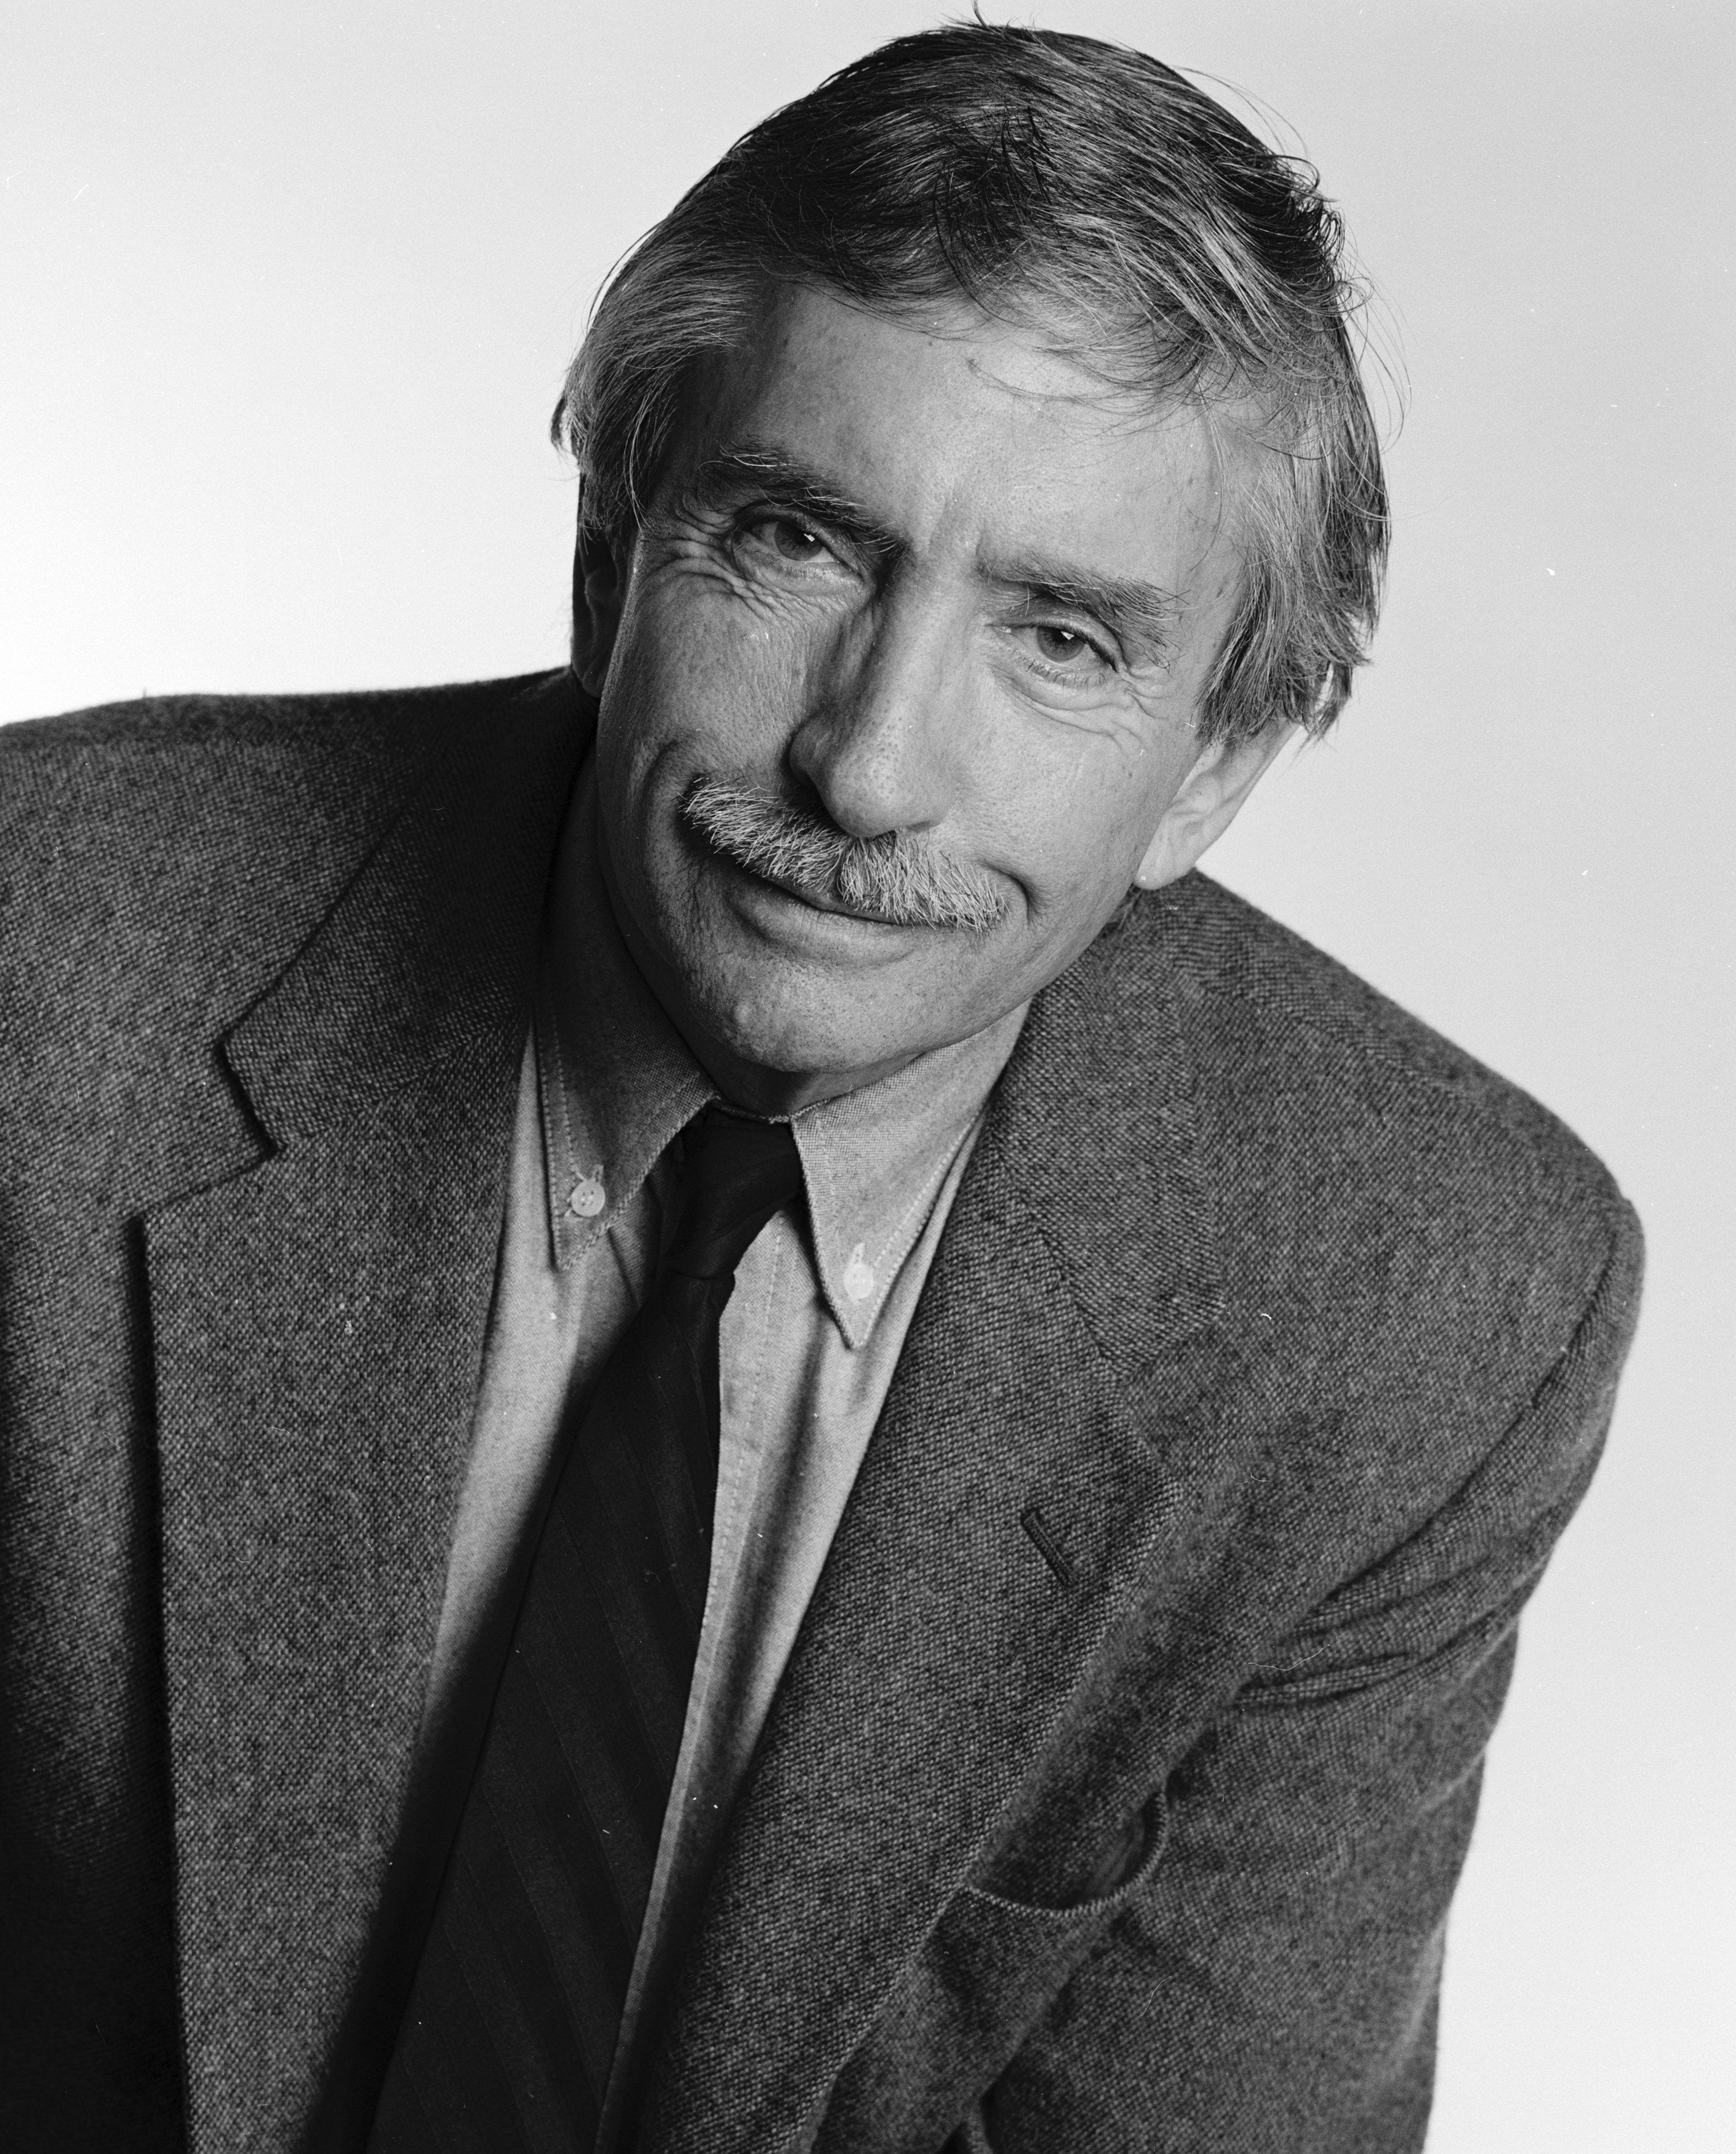 Pulitzer Prize winning playwright Edward Albee in 1995. (Photo by Jack Mitchell/Getty Images)